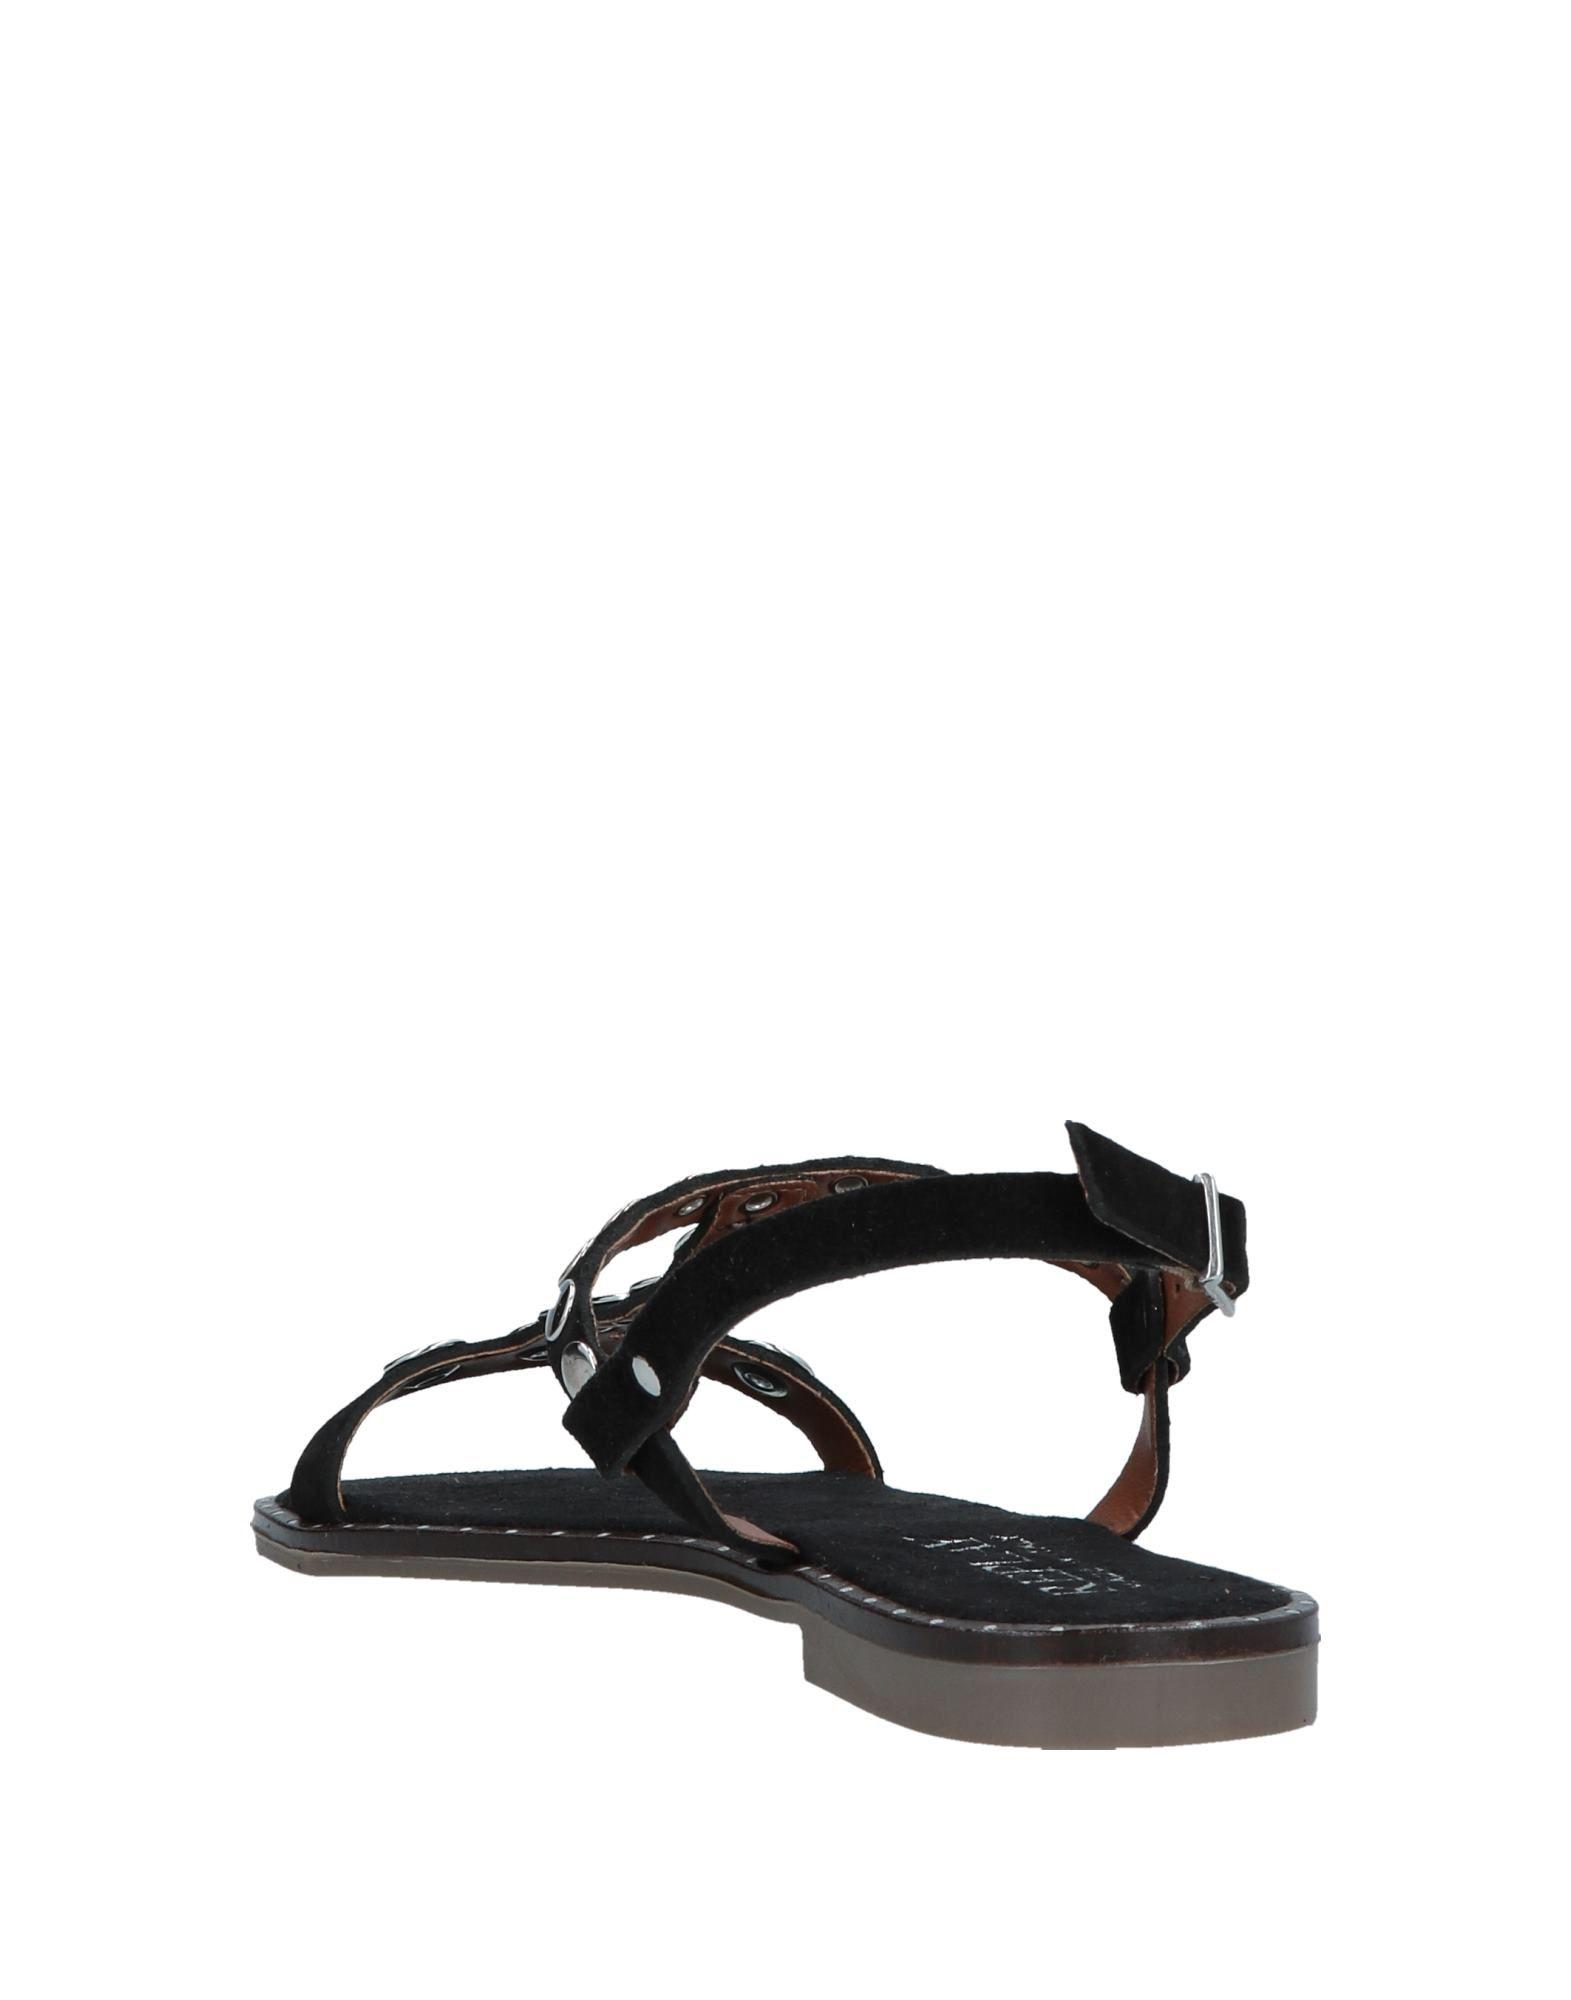 Sandals Black In Replay Replay In Lyst Sandals Lyst yvON8Pm0wn